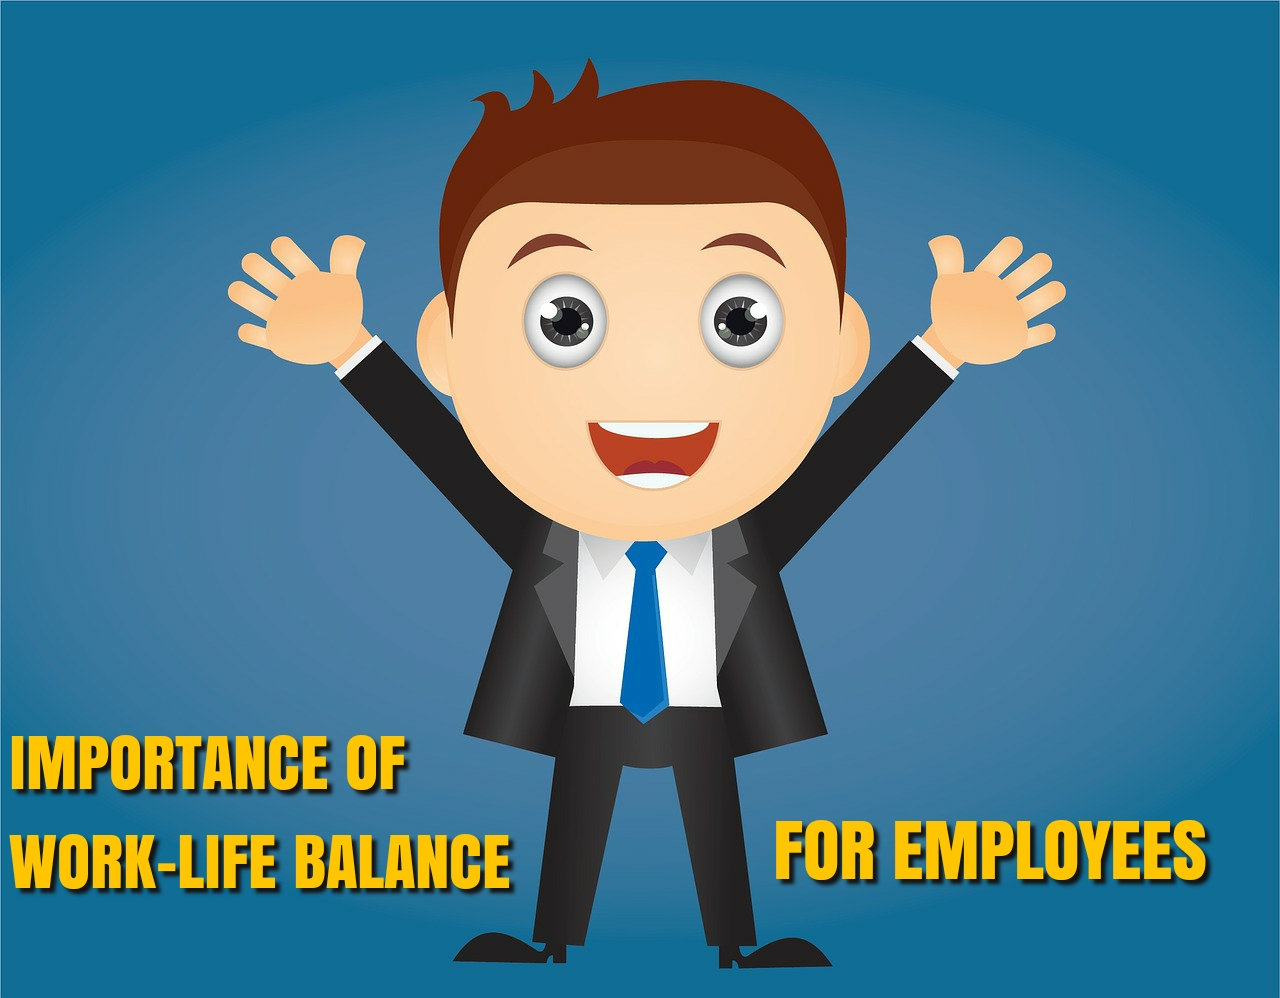 Importance of work-life balance